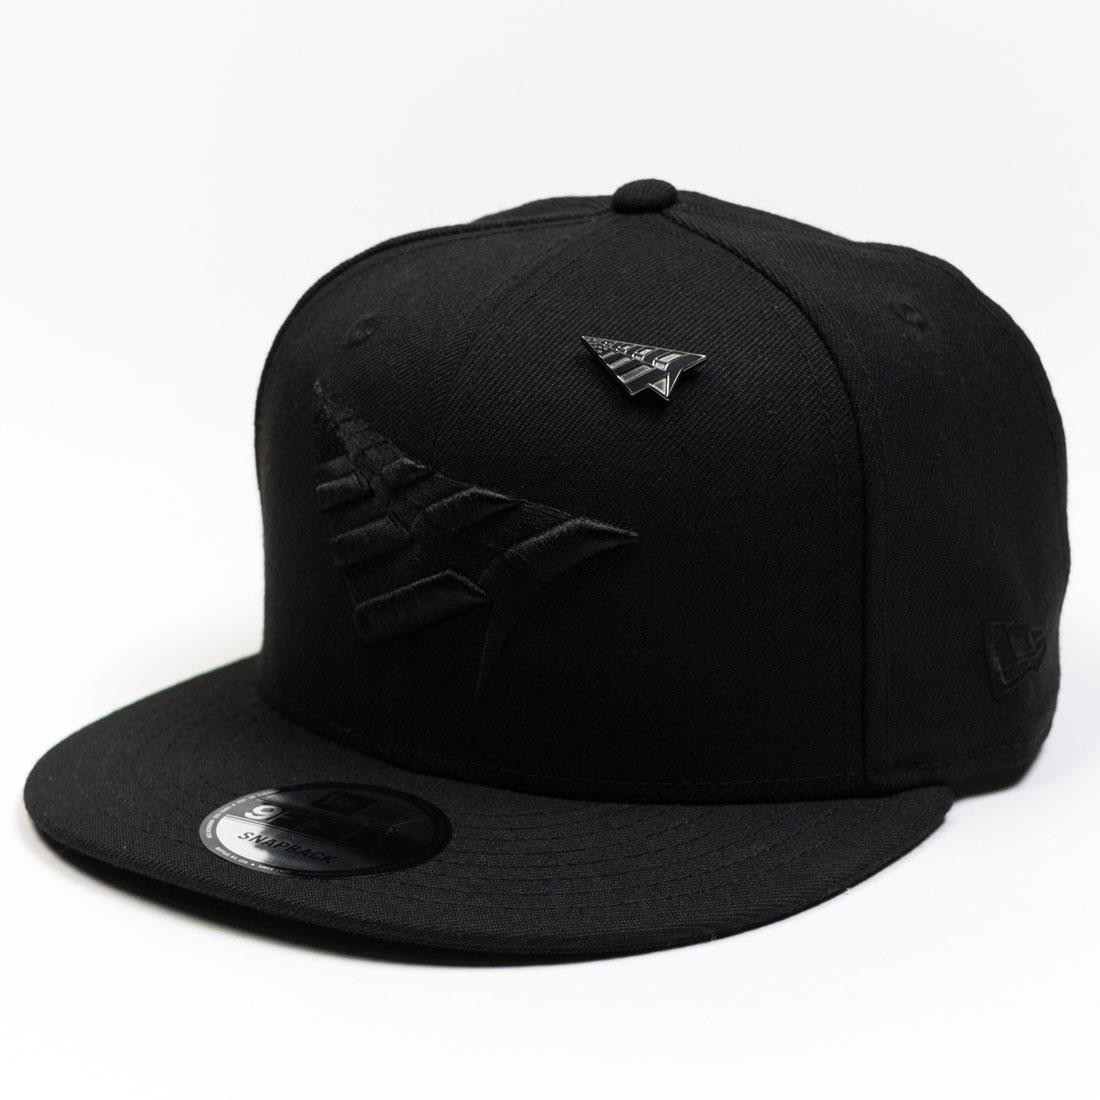 77b342f429a Roc Nation The Crown Snapback With Pin and Black Undervisor black black